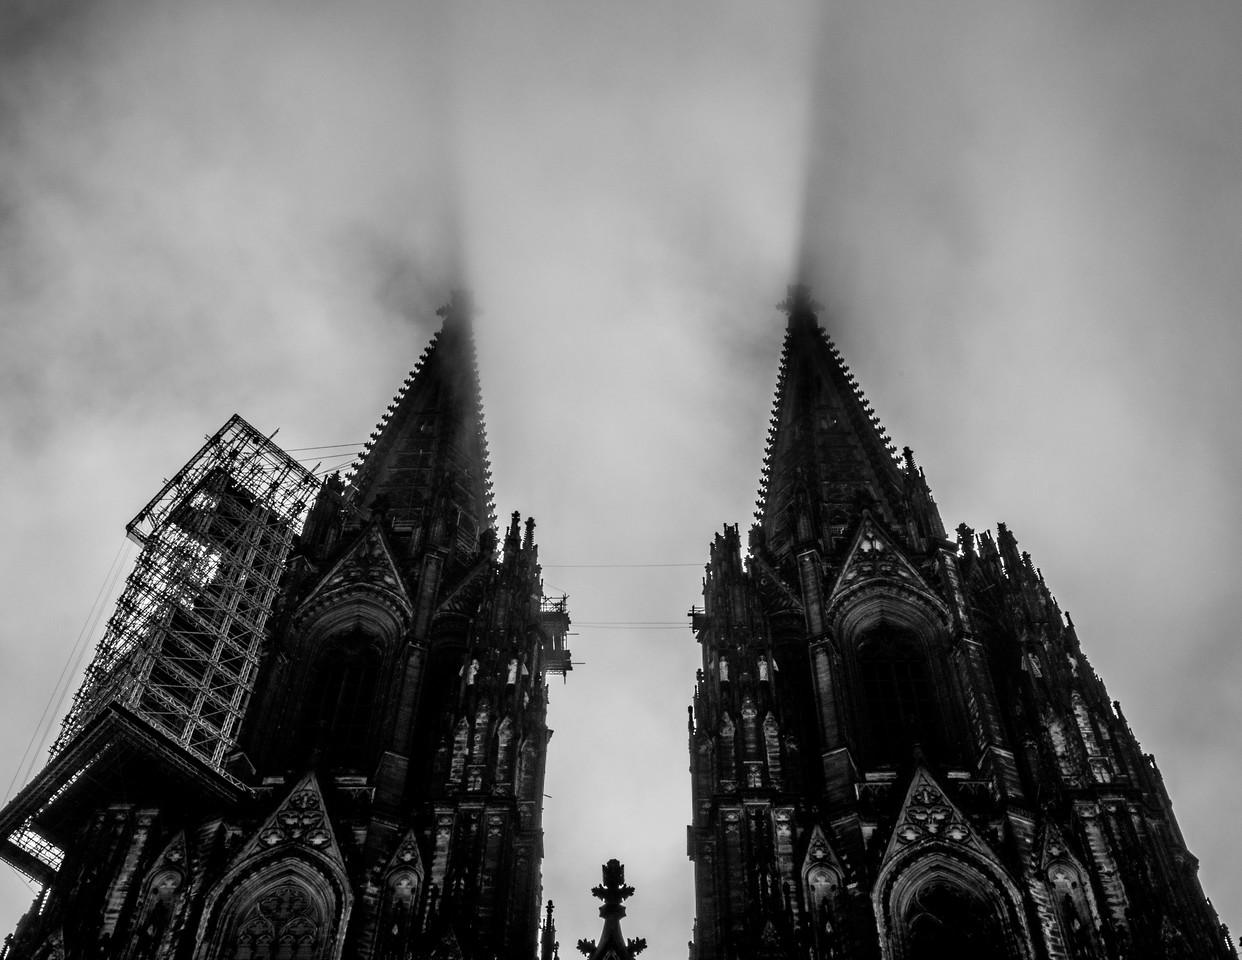 Cologne Dome in the morning